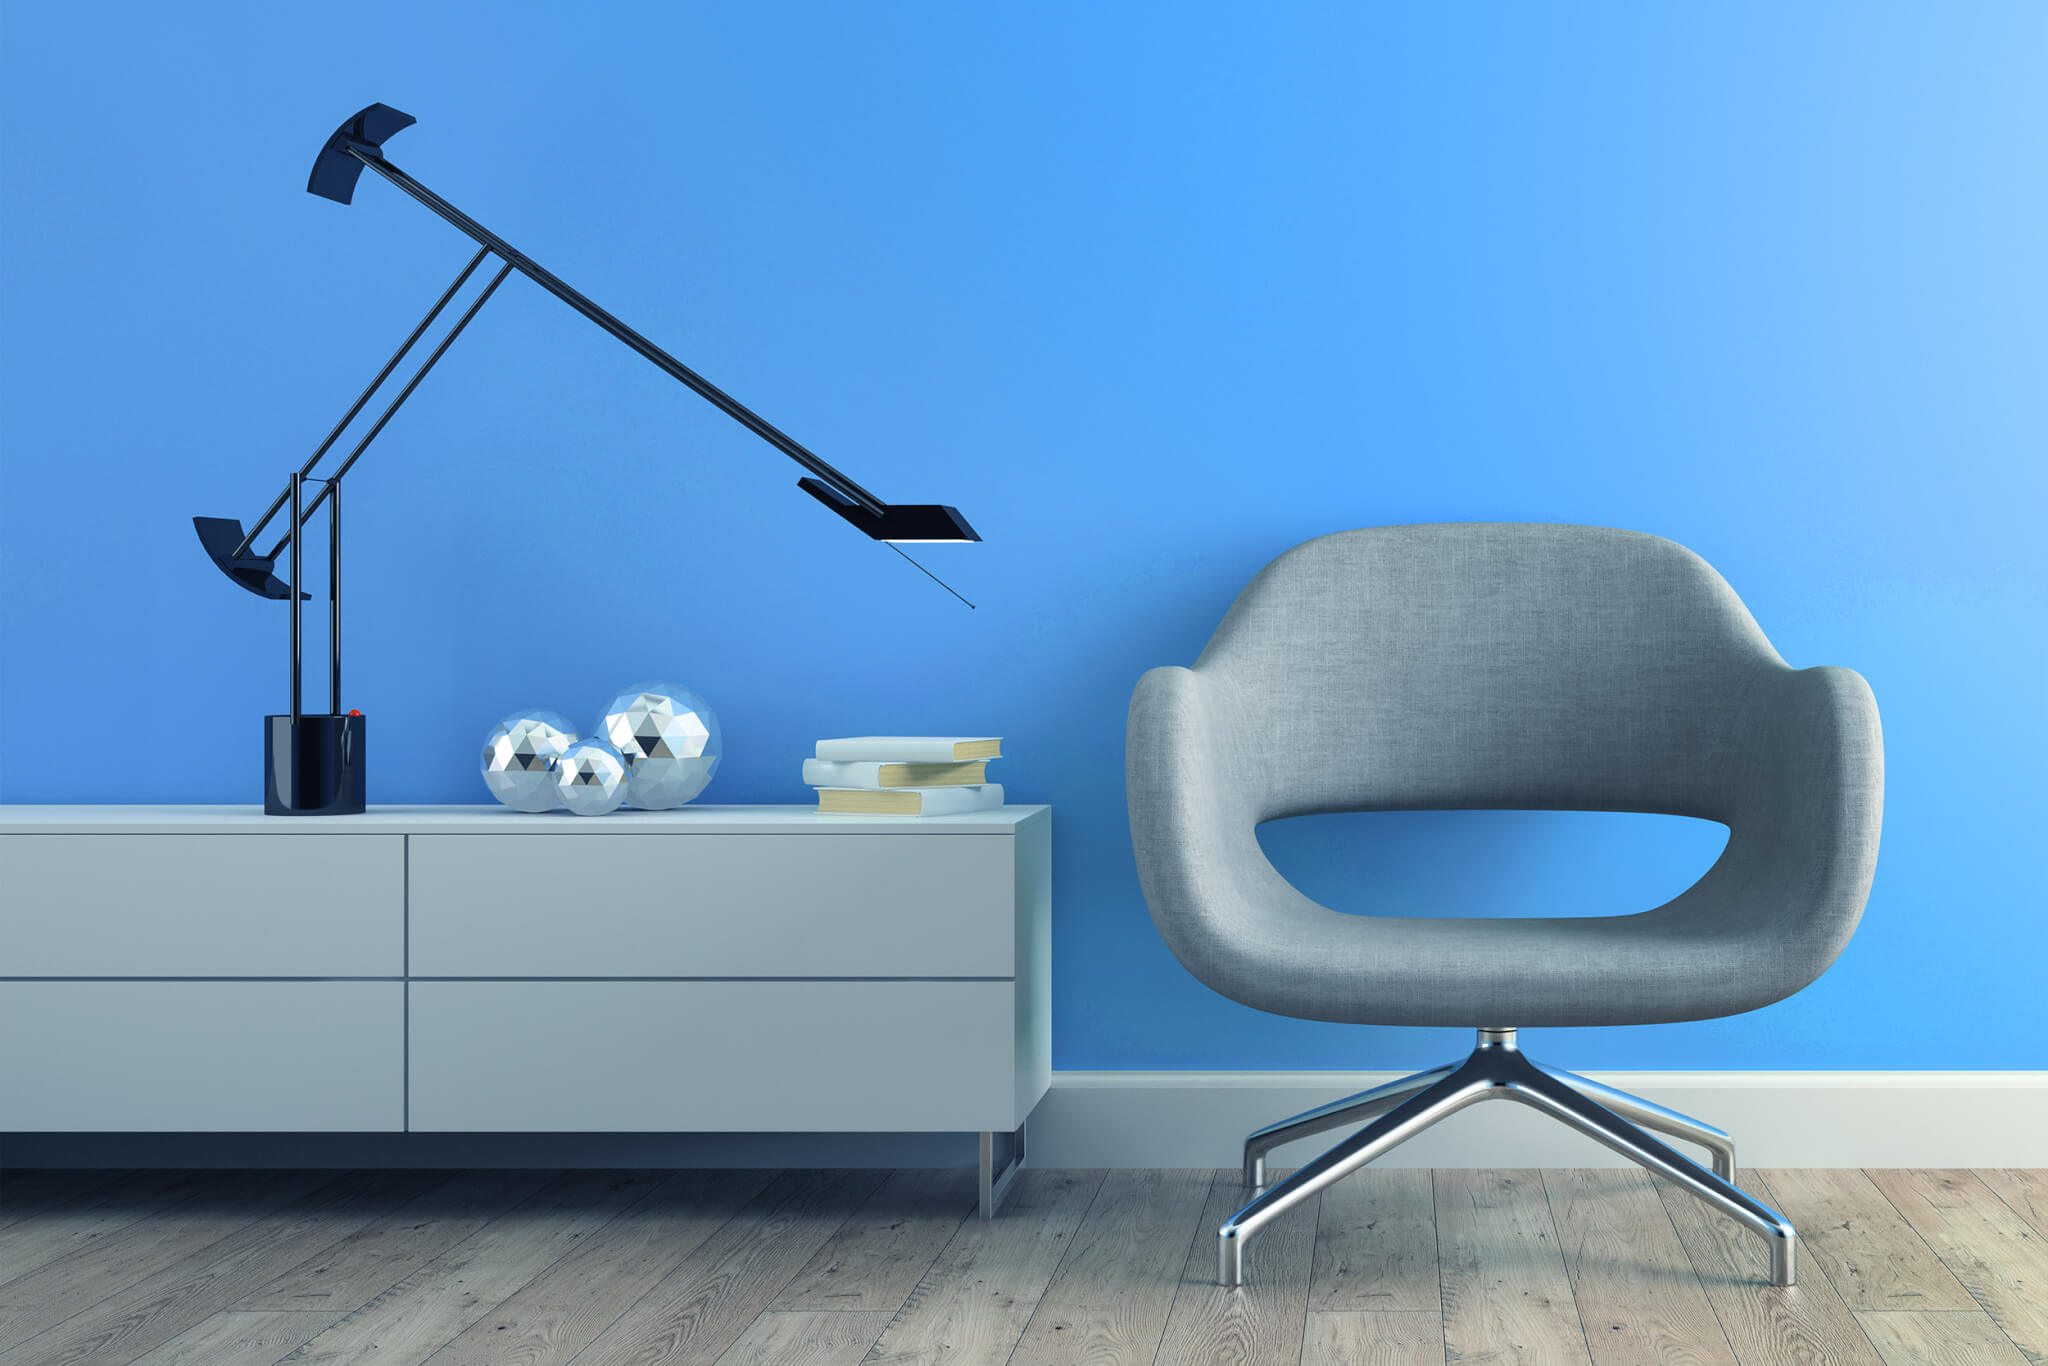 http://leaffurniture.in/wp-content/uploads/2018/08/image-chair-blue-wall.jpg